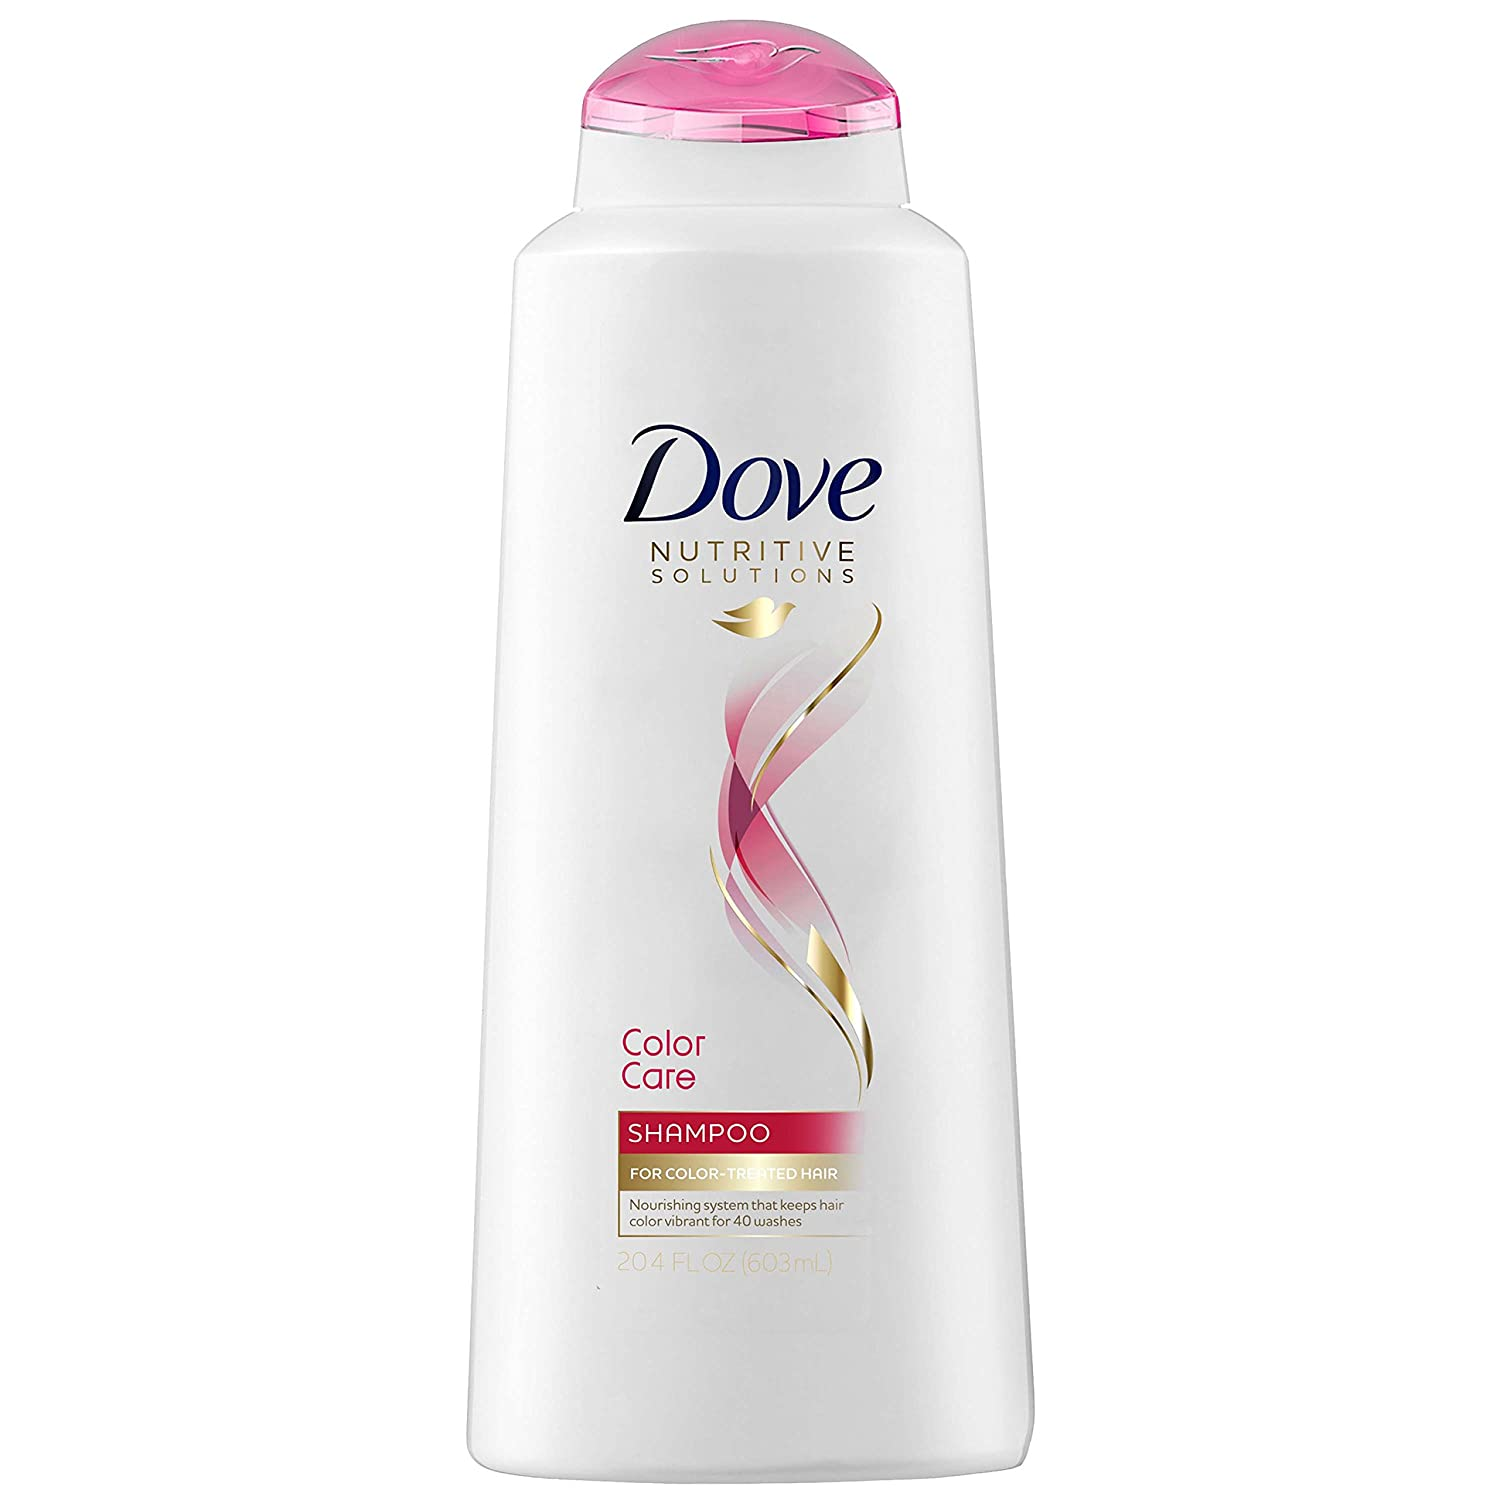 Dove Nutritive Solutions Shampoo, Color Care, 20.4 Fl Oz (Pack of 4)